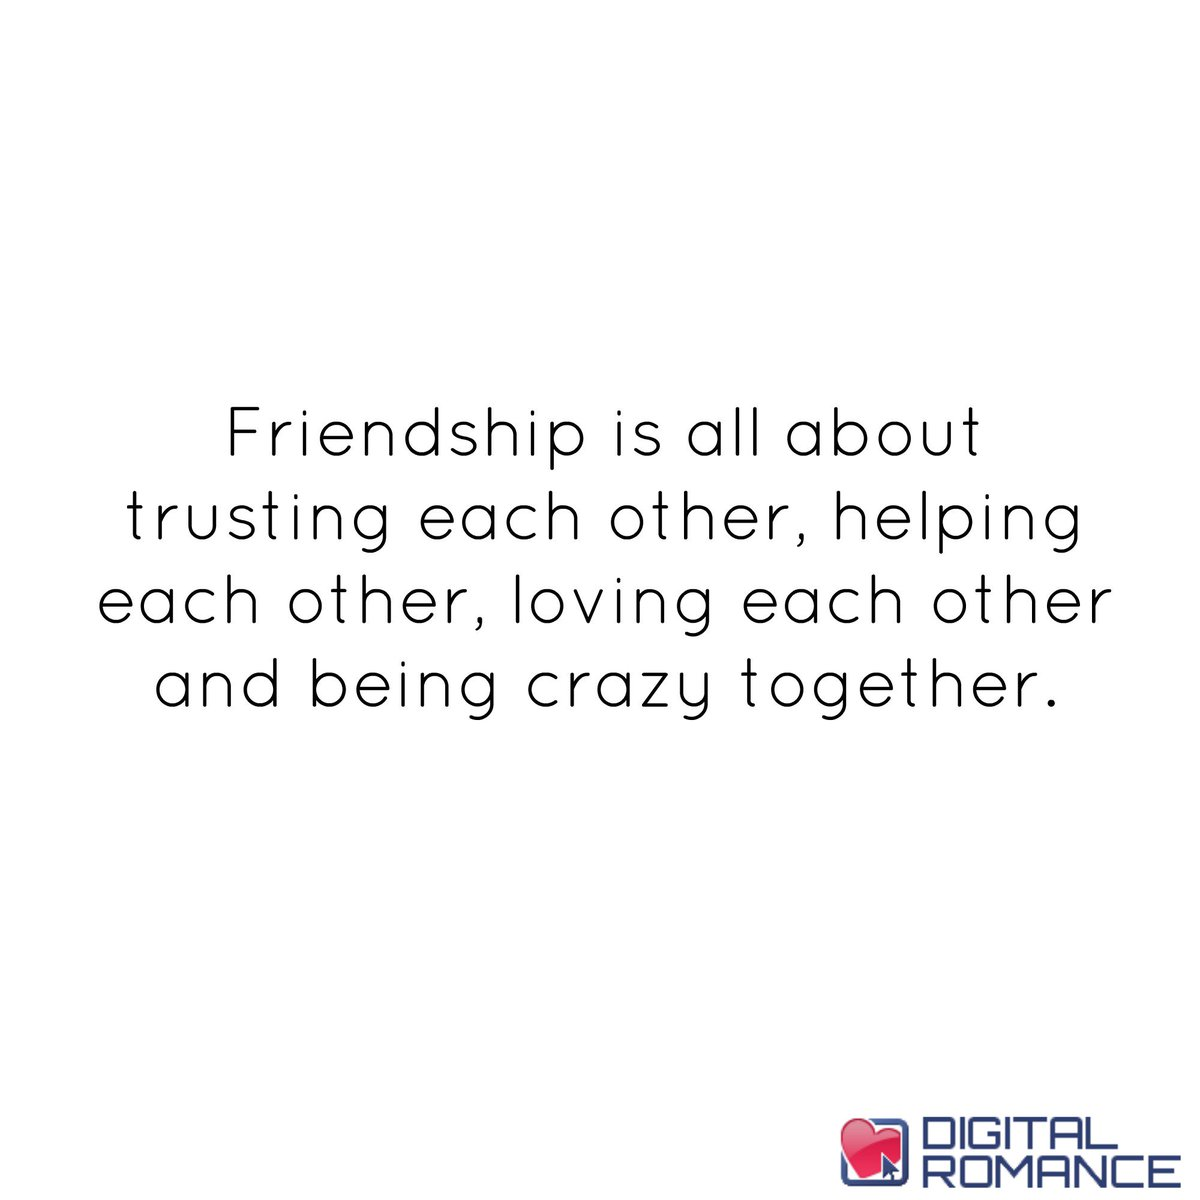 Digital Romance Inc On Twitter Friendship Is All About Trusting